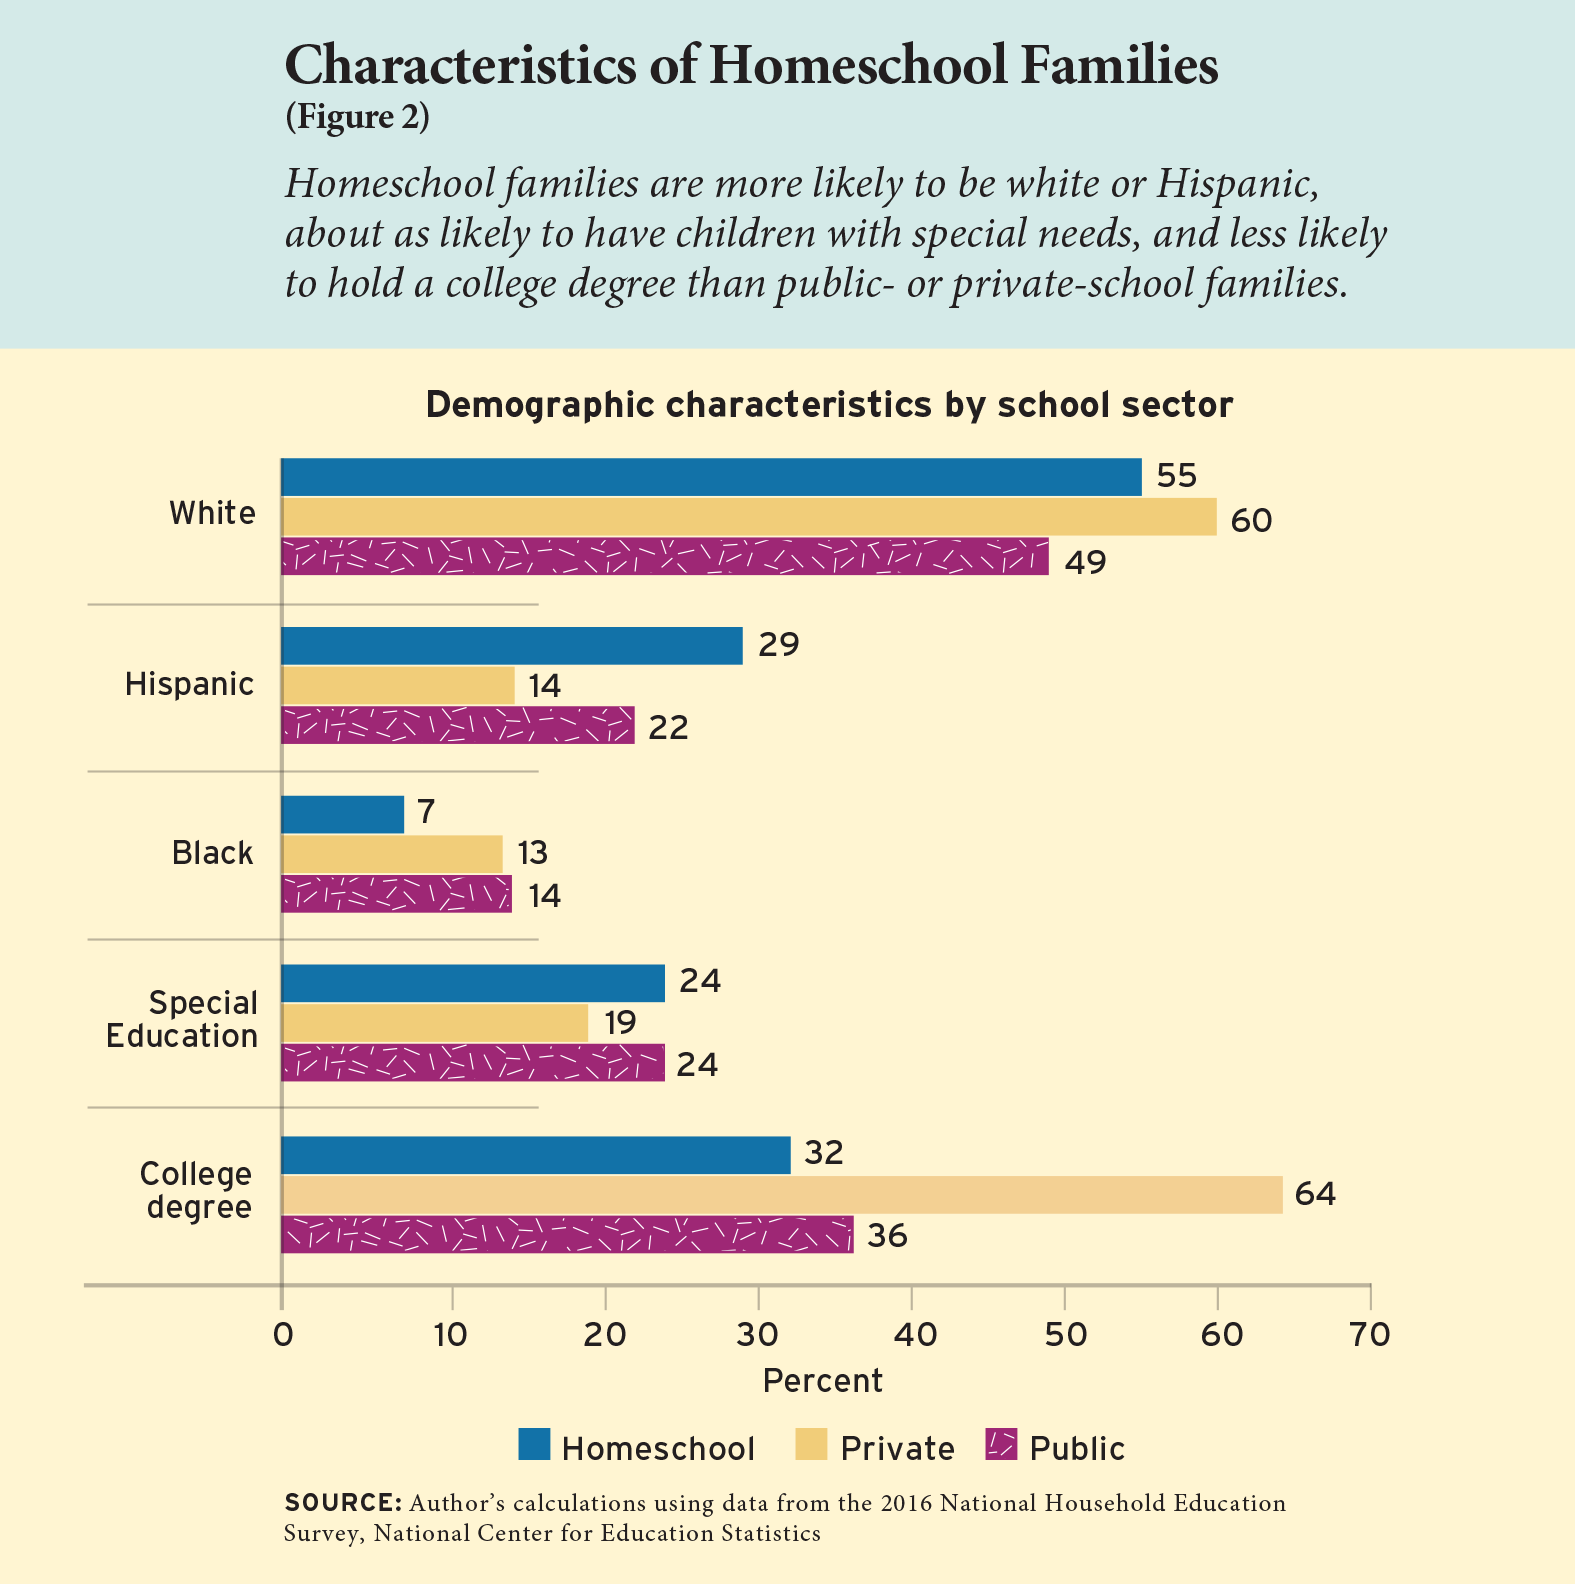 Figure 2: Characteristics of Homeschool Families